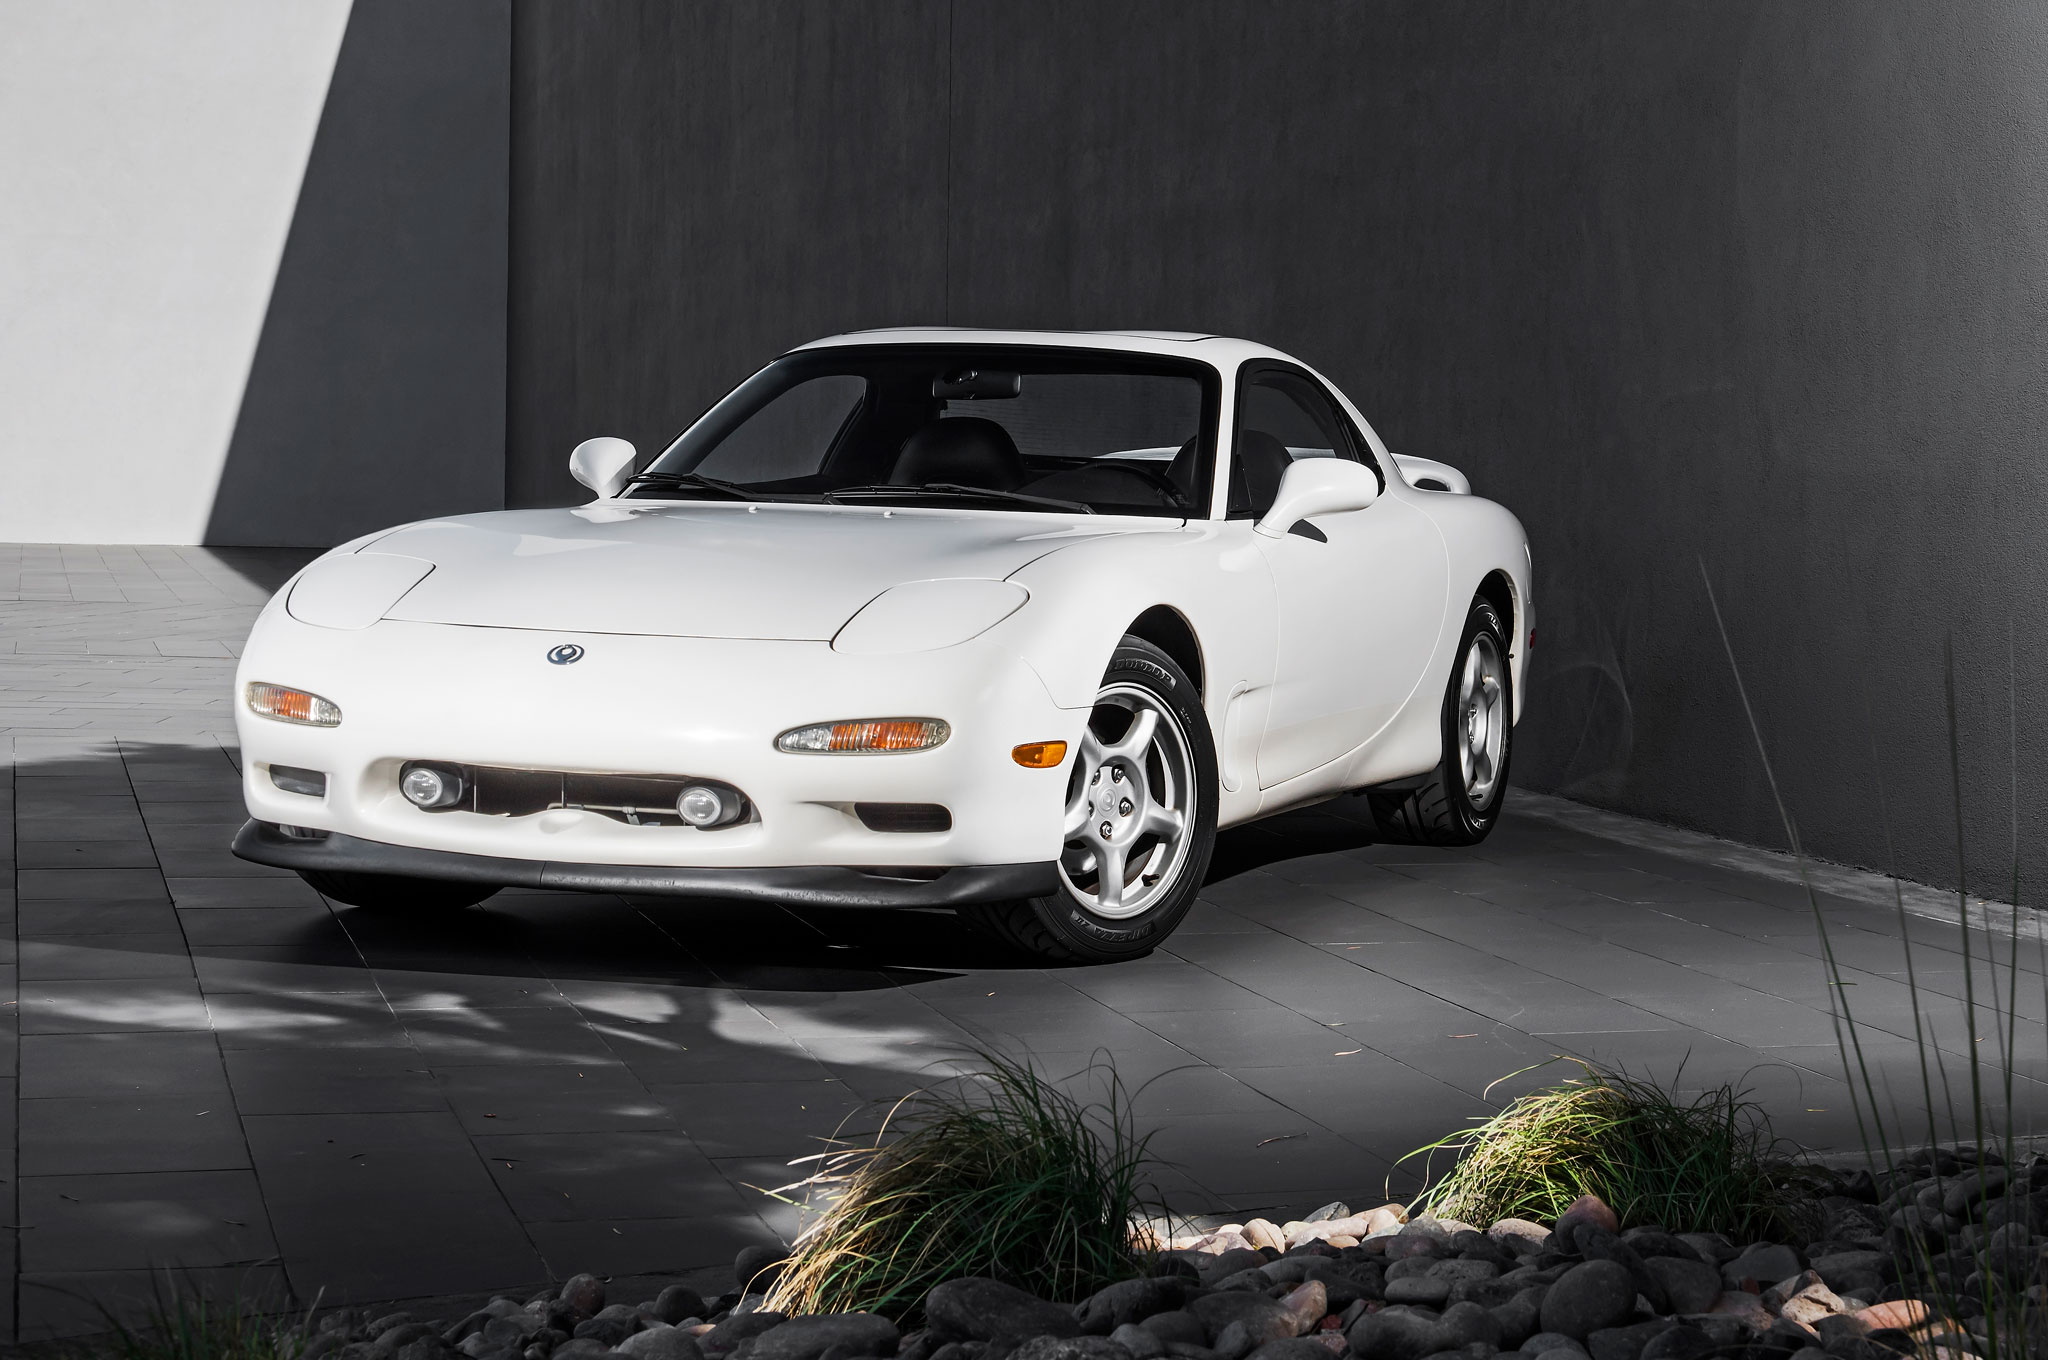 collectible classic: 1993-1995 mazda rx-7